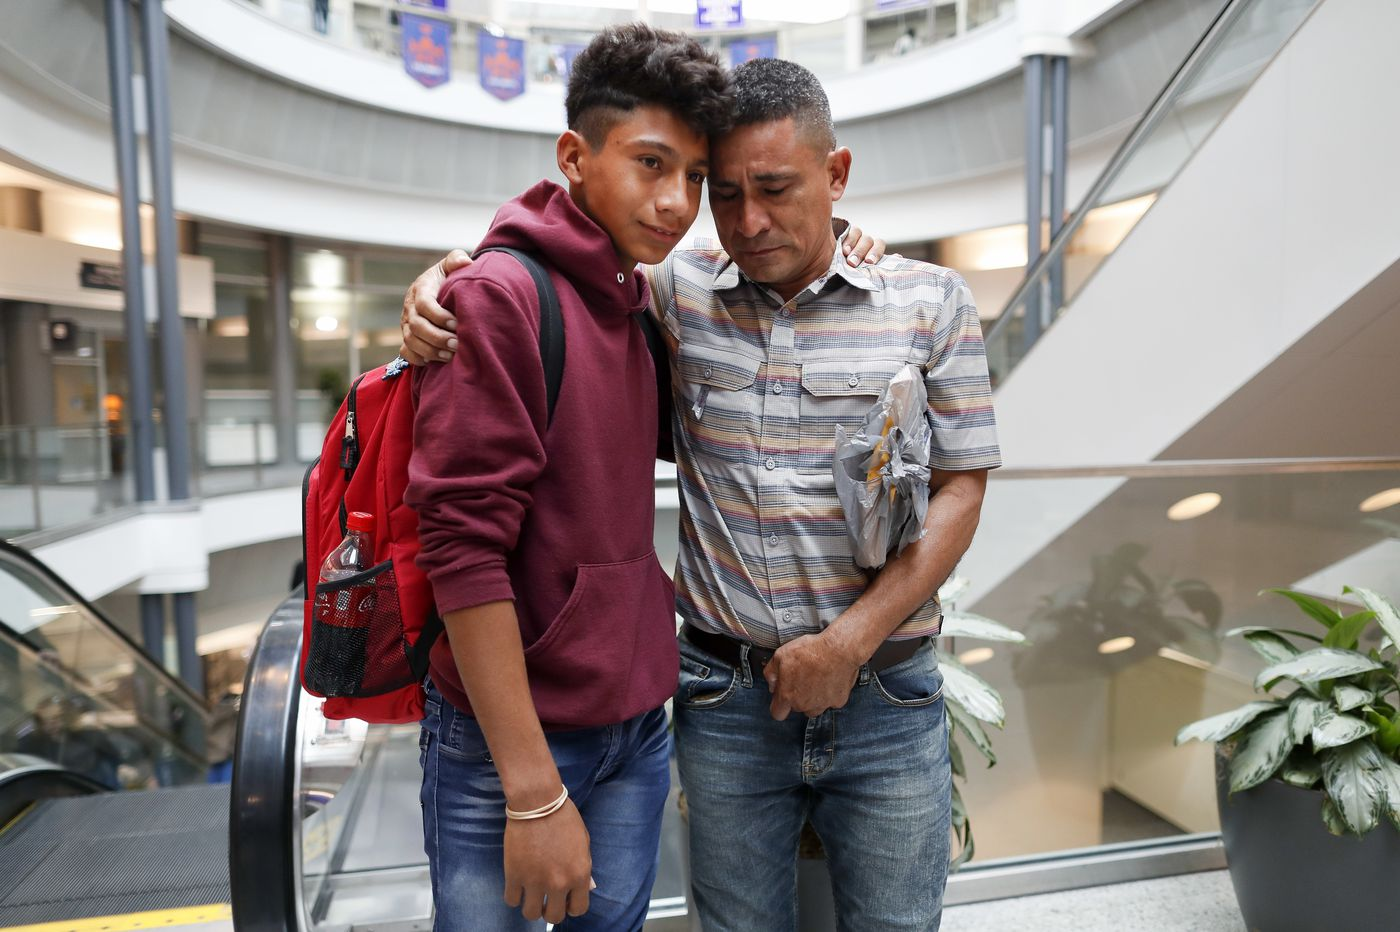 Thousands of older children also were separated at the border. What happens to them?